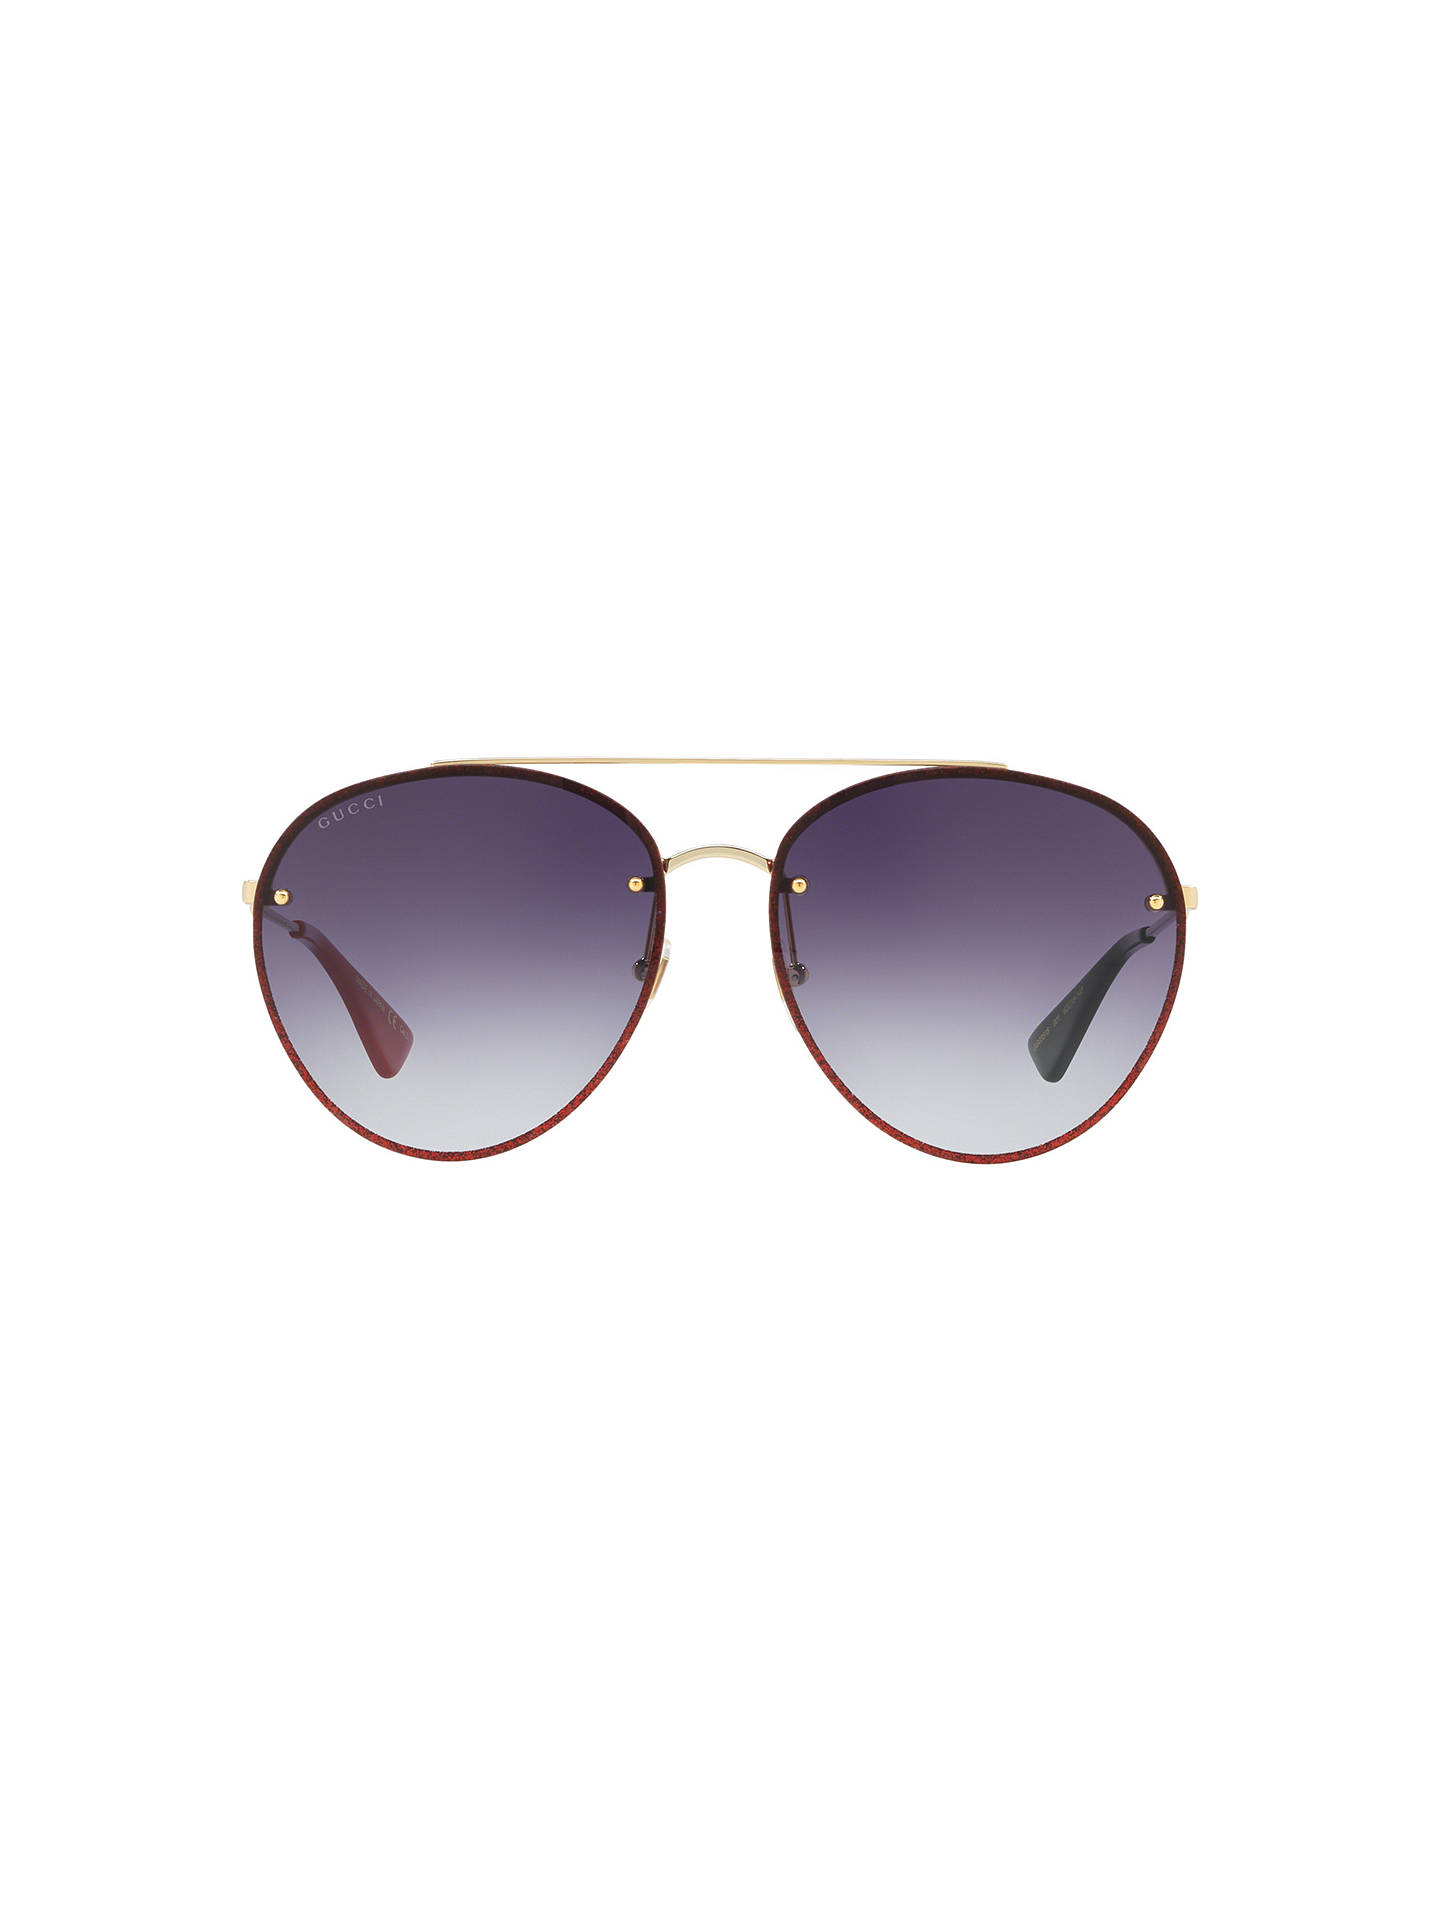 b51a0fecd20 Gucci GG0351S Women s Aviator Sunglasses at John Lewis   Partners